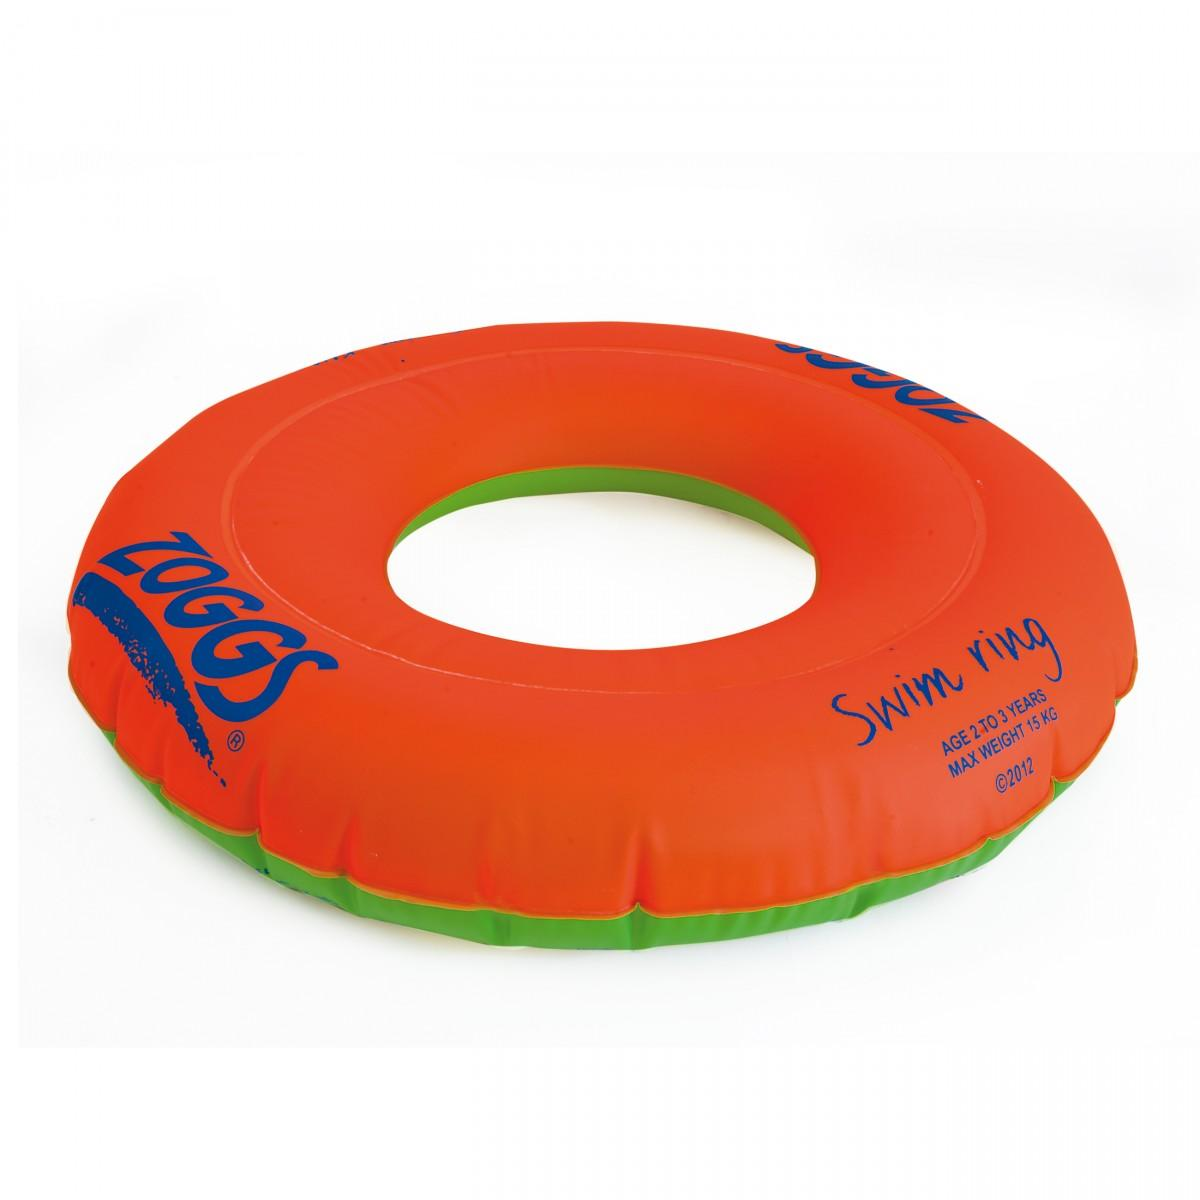 rings ring buoy approved zoomin swimoutlet kemp shipping coast free flotation p lifeguard at com